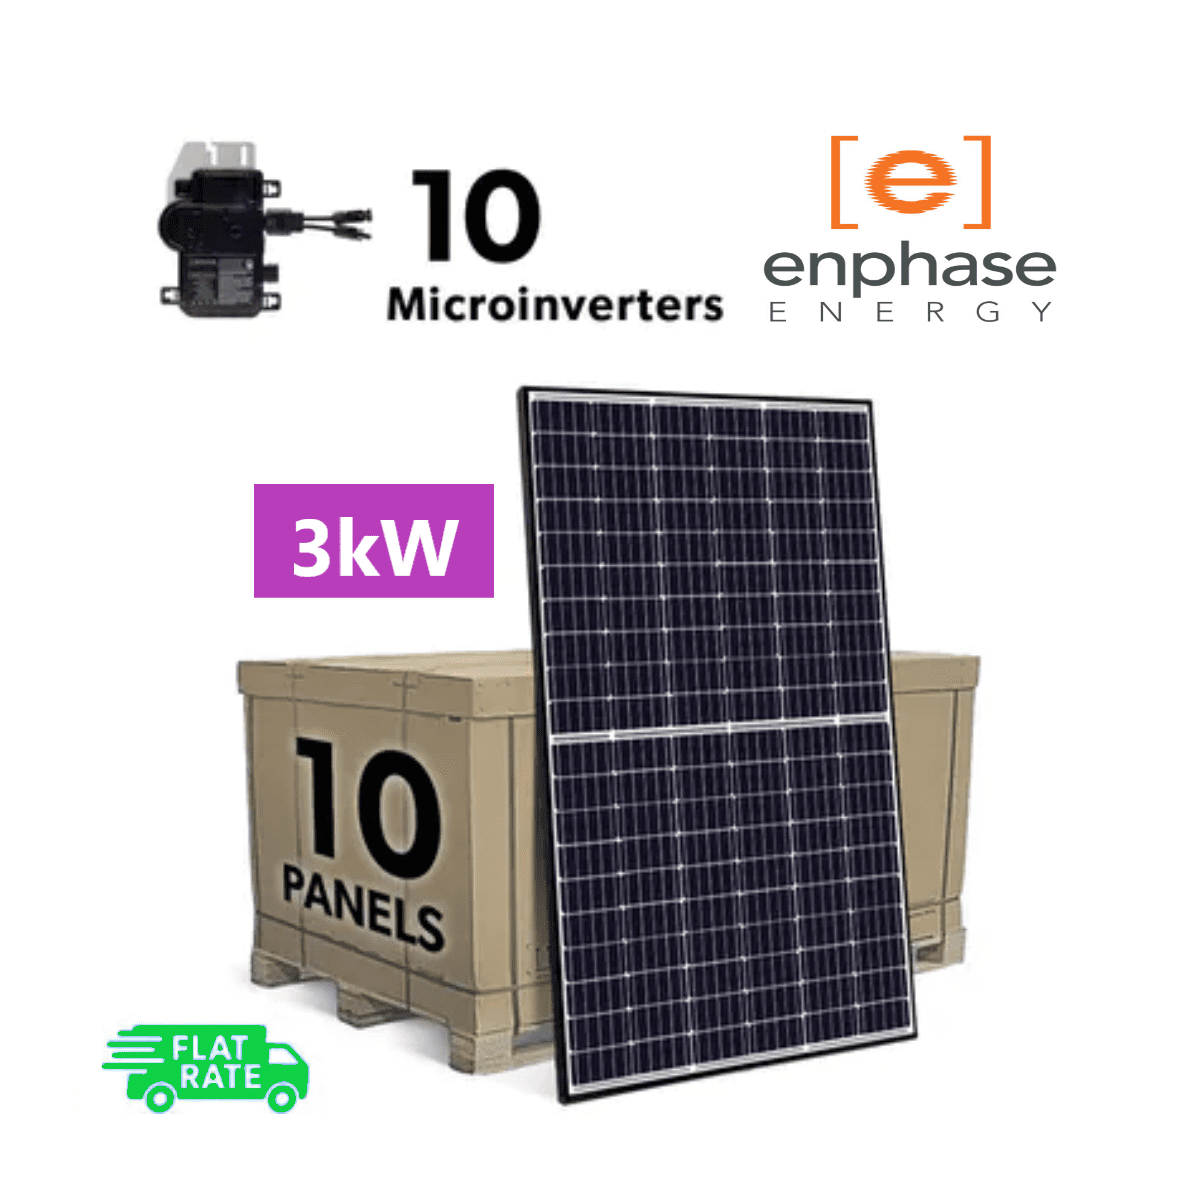 Complete Grid Tied 3kW (3000W) DIY Solar Panel System Kit with Enphase IQ+ Microinverters